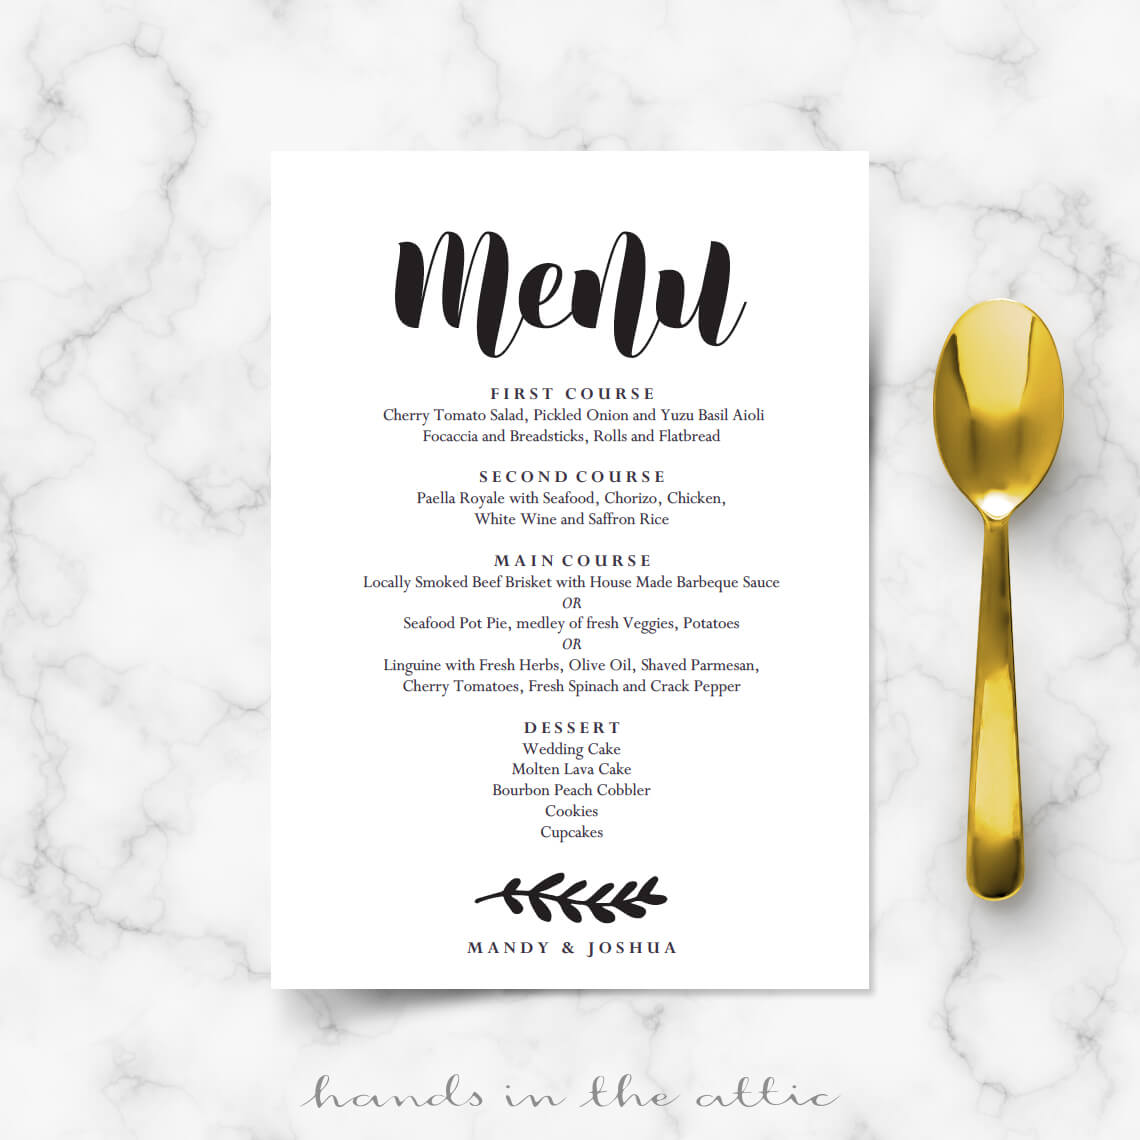 Simple Wedding Menu Card | Printable Templates | Hands in the Attic